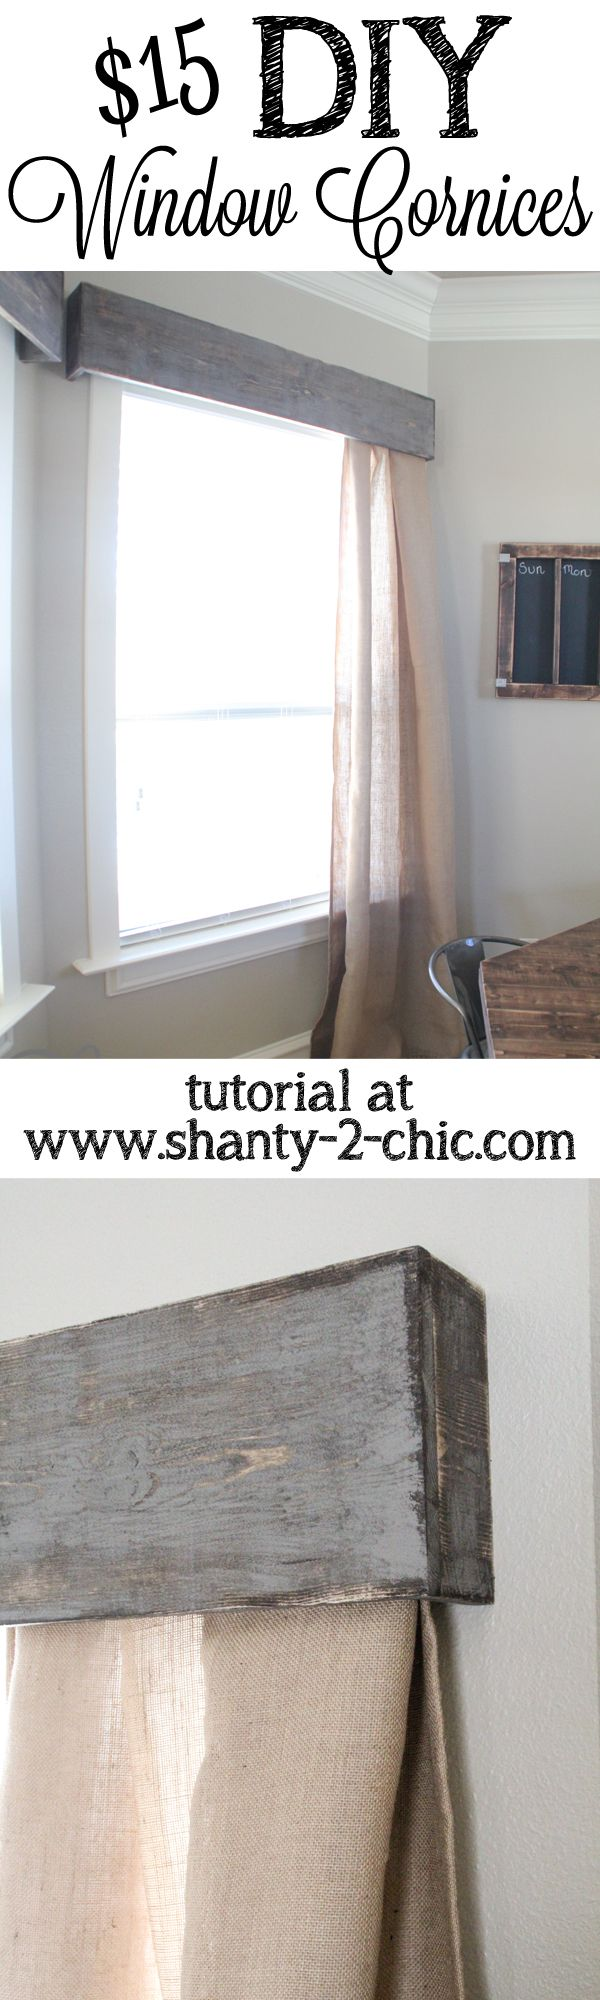 Diy copper curtain rods that wont break the bank diy how to window - Diy Wooden Window Cornice